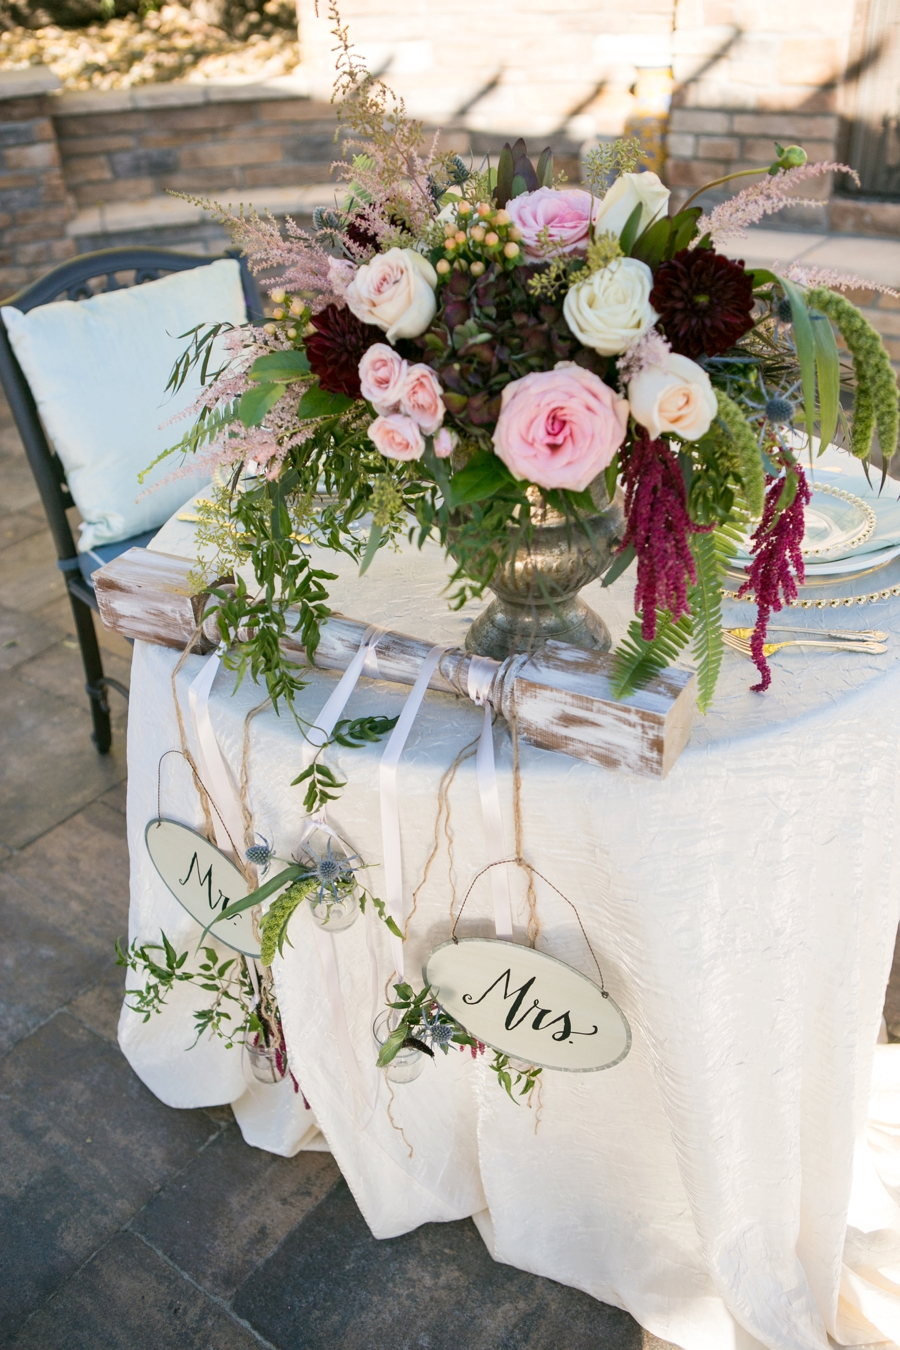 Rustic Elegant Blush and Red Wedding Ideas via TheELD.com